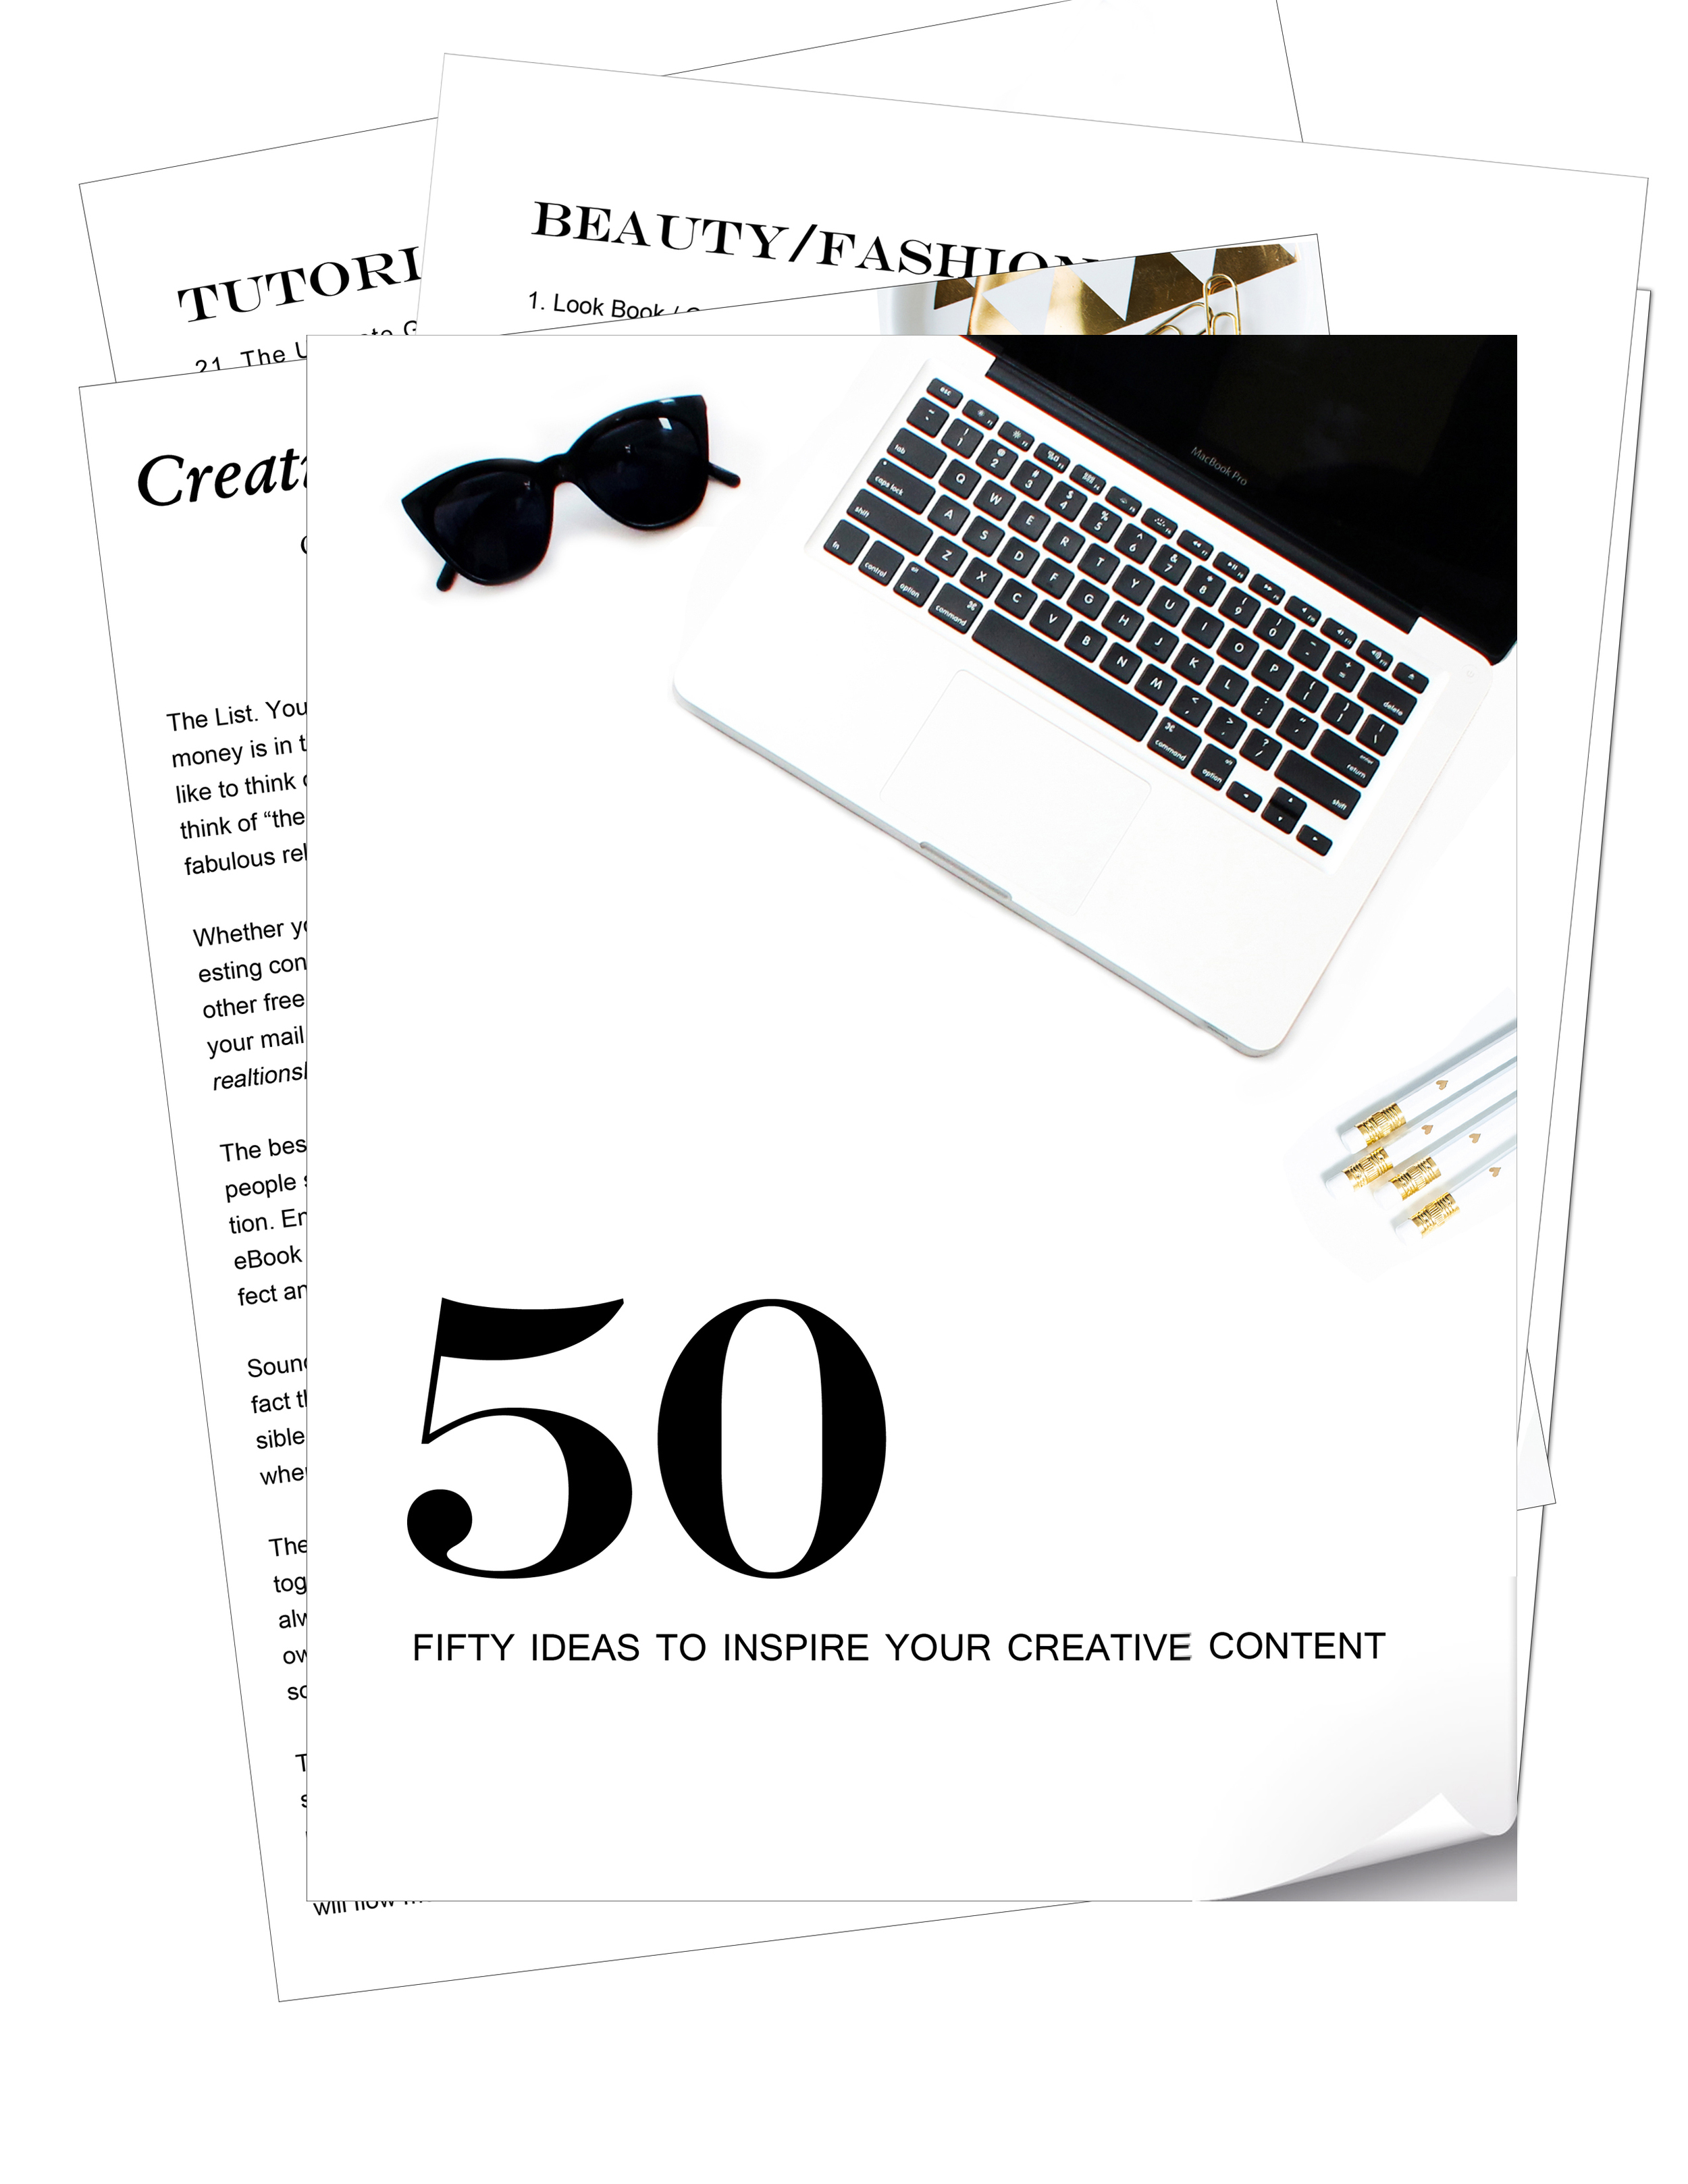 Sometimes creativity just needs a little help. This list will provide you with 50 topics that you can write about, expand on, research to come up with ideas for your blog, your newsletter or for freemium ideas for your opt-in. And...it's free.